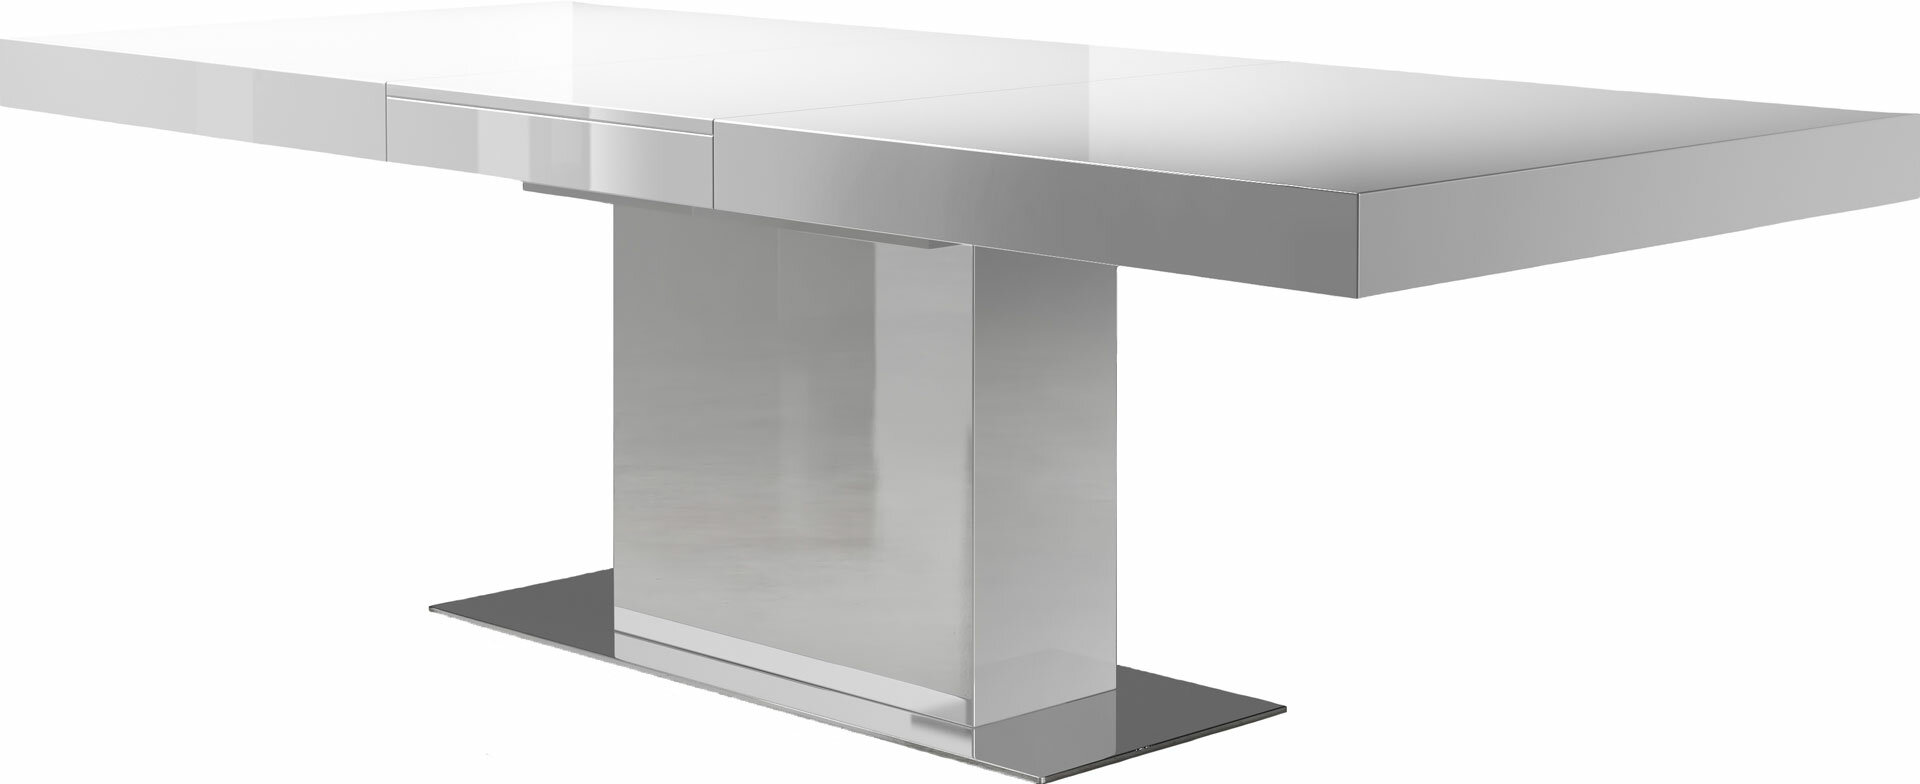 Astor extendable dining table see more by modloft